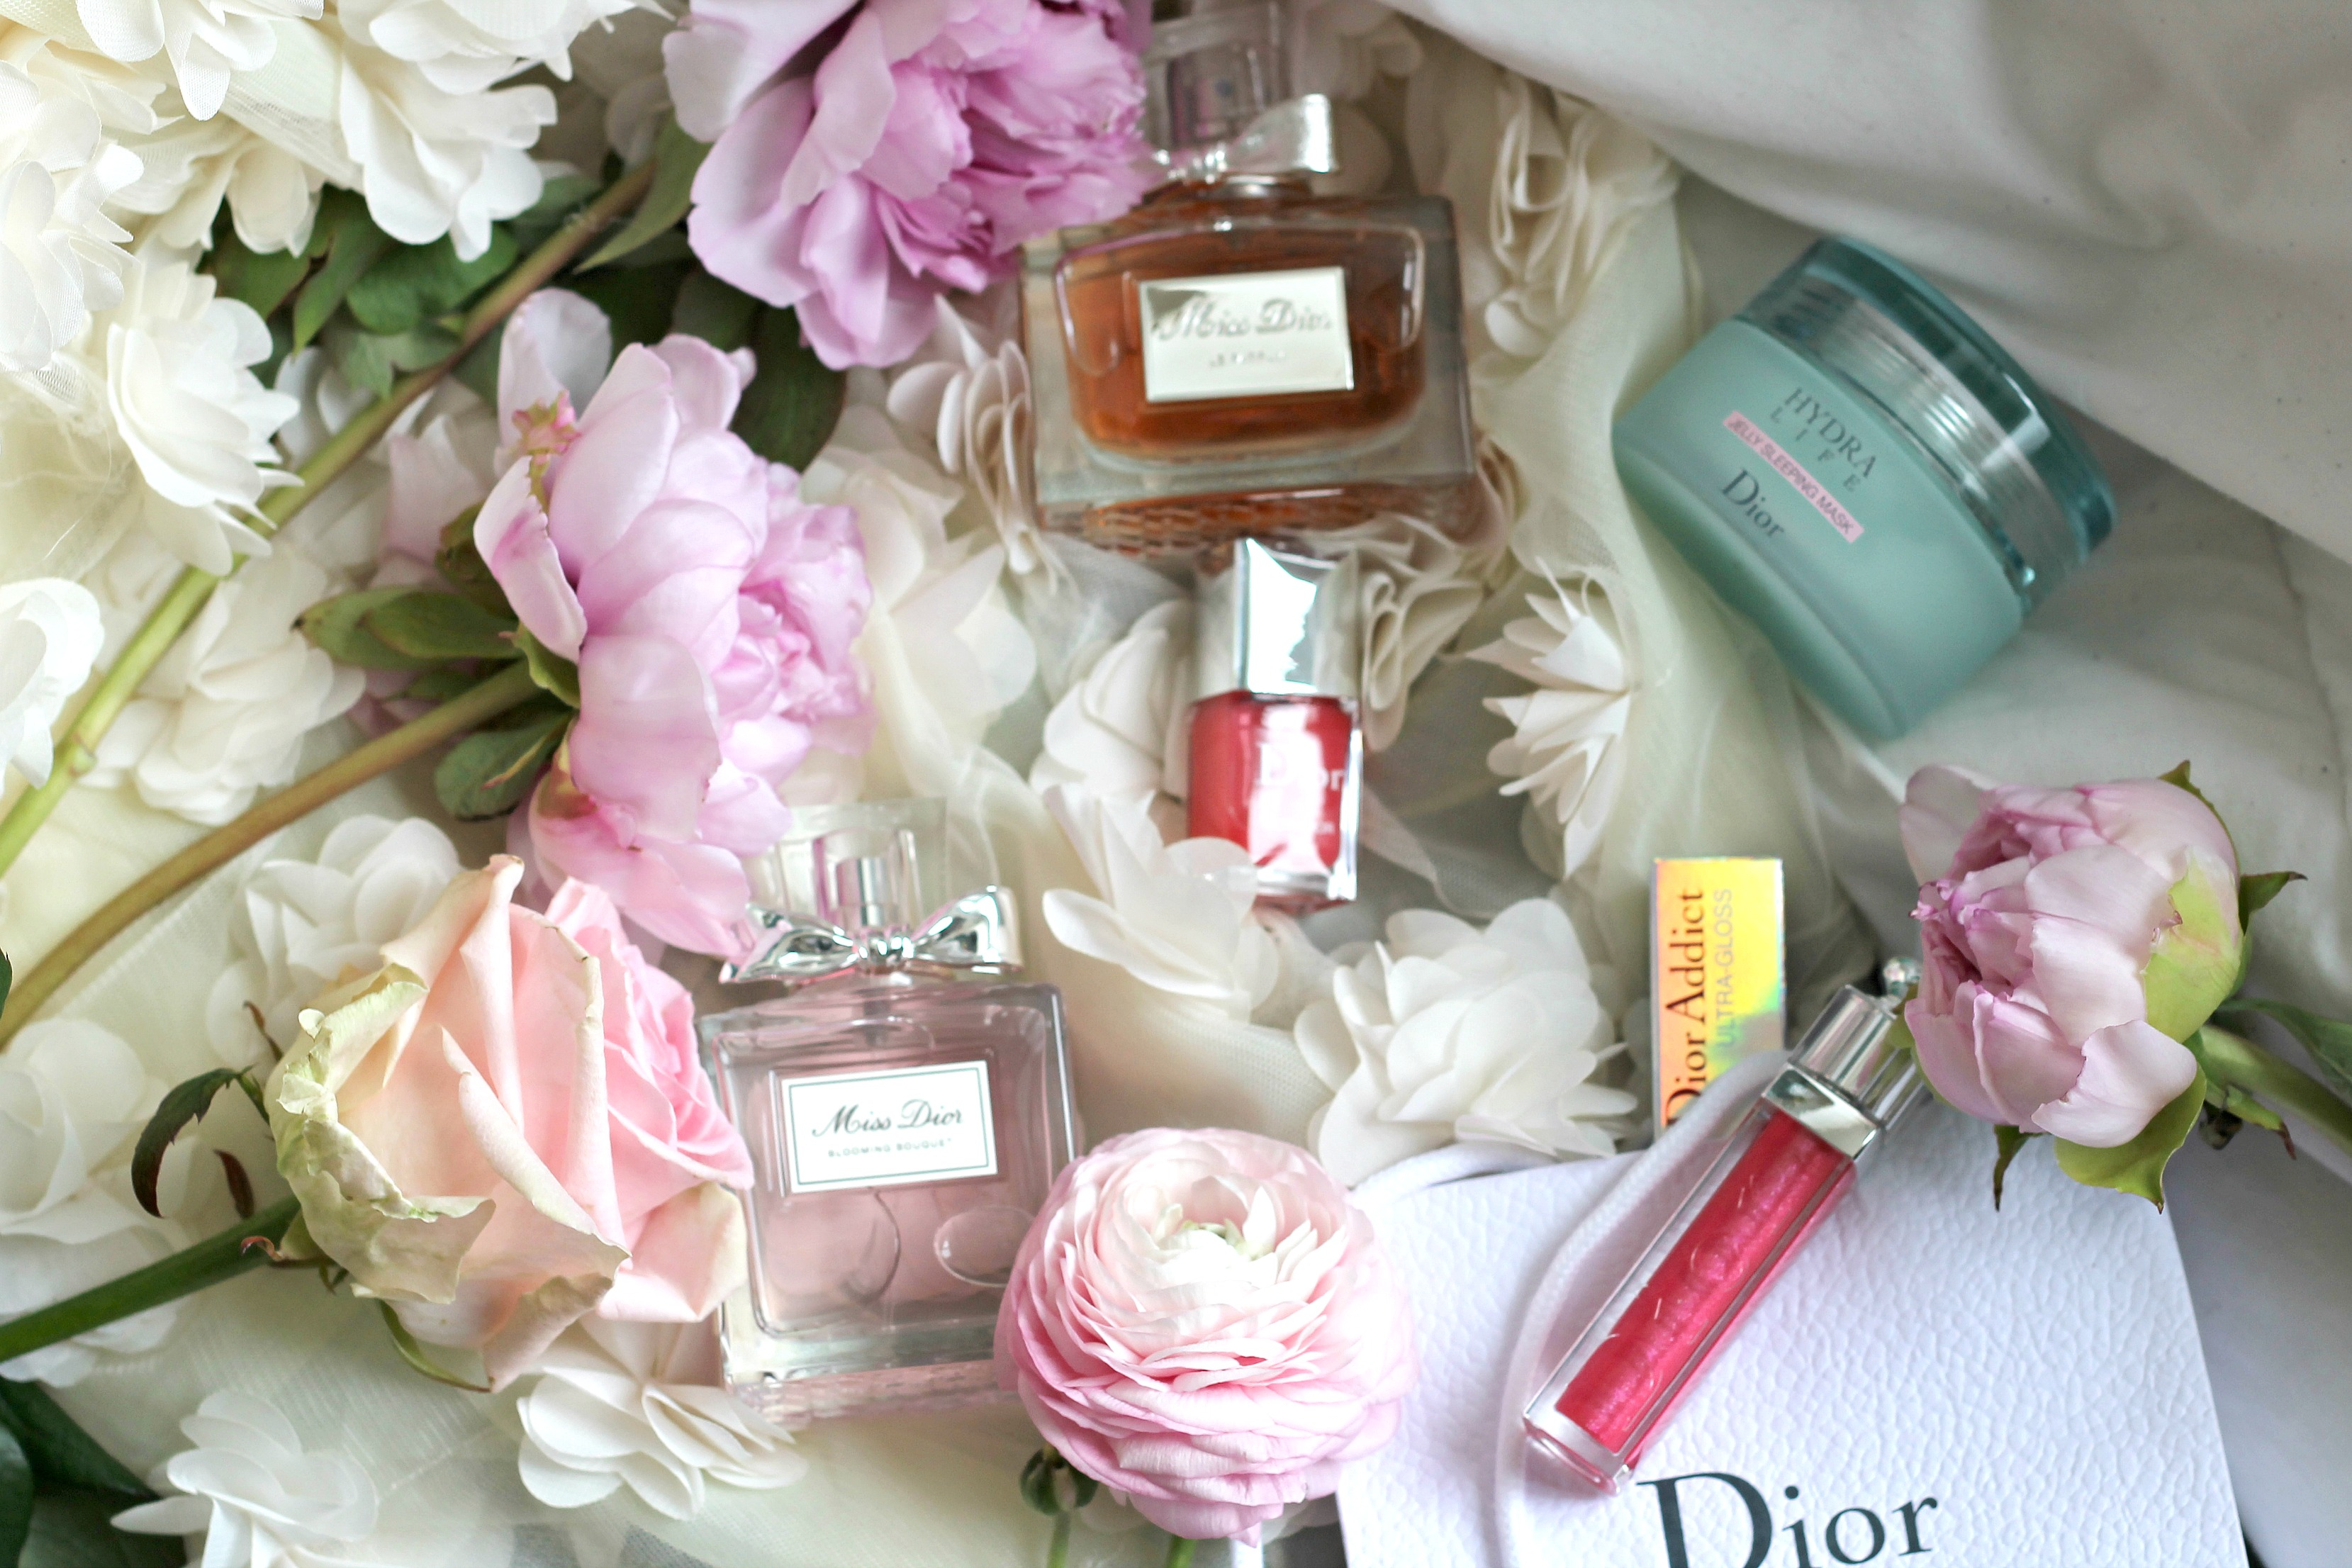 Miss dior profumo, miss dior parfum blooming bouquet, dior gloss ultra-dior, collezione dior beauty primavera estate 2016, dior le vernis primavera estate 2016, profumi più buoni 2016, profumi donna più buoni primavera estate 2016, milky dots dior, elisa bellino, theladycracy.it, elisa bellino, fashion bloggers, fashion blog, fashion blogger italia 2016, fashion blogger famose, dior ultra gloss 2016, gonna fiori asos, outfit primavera estate 2016, tendenze primavera estate 2016,